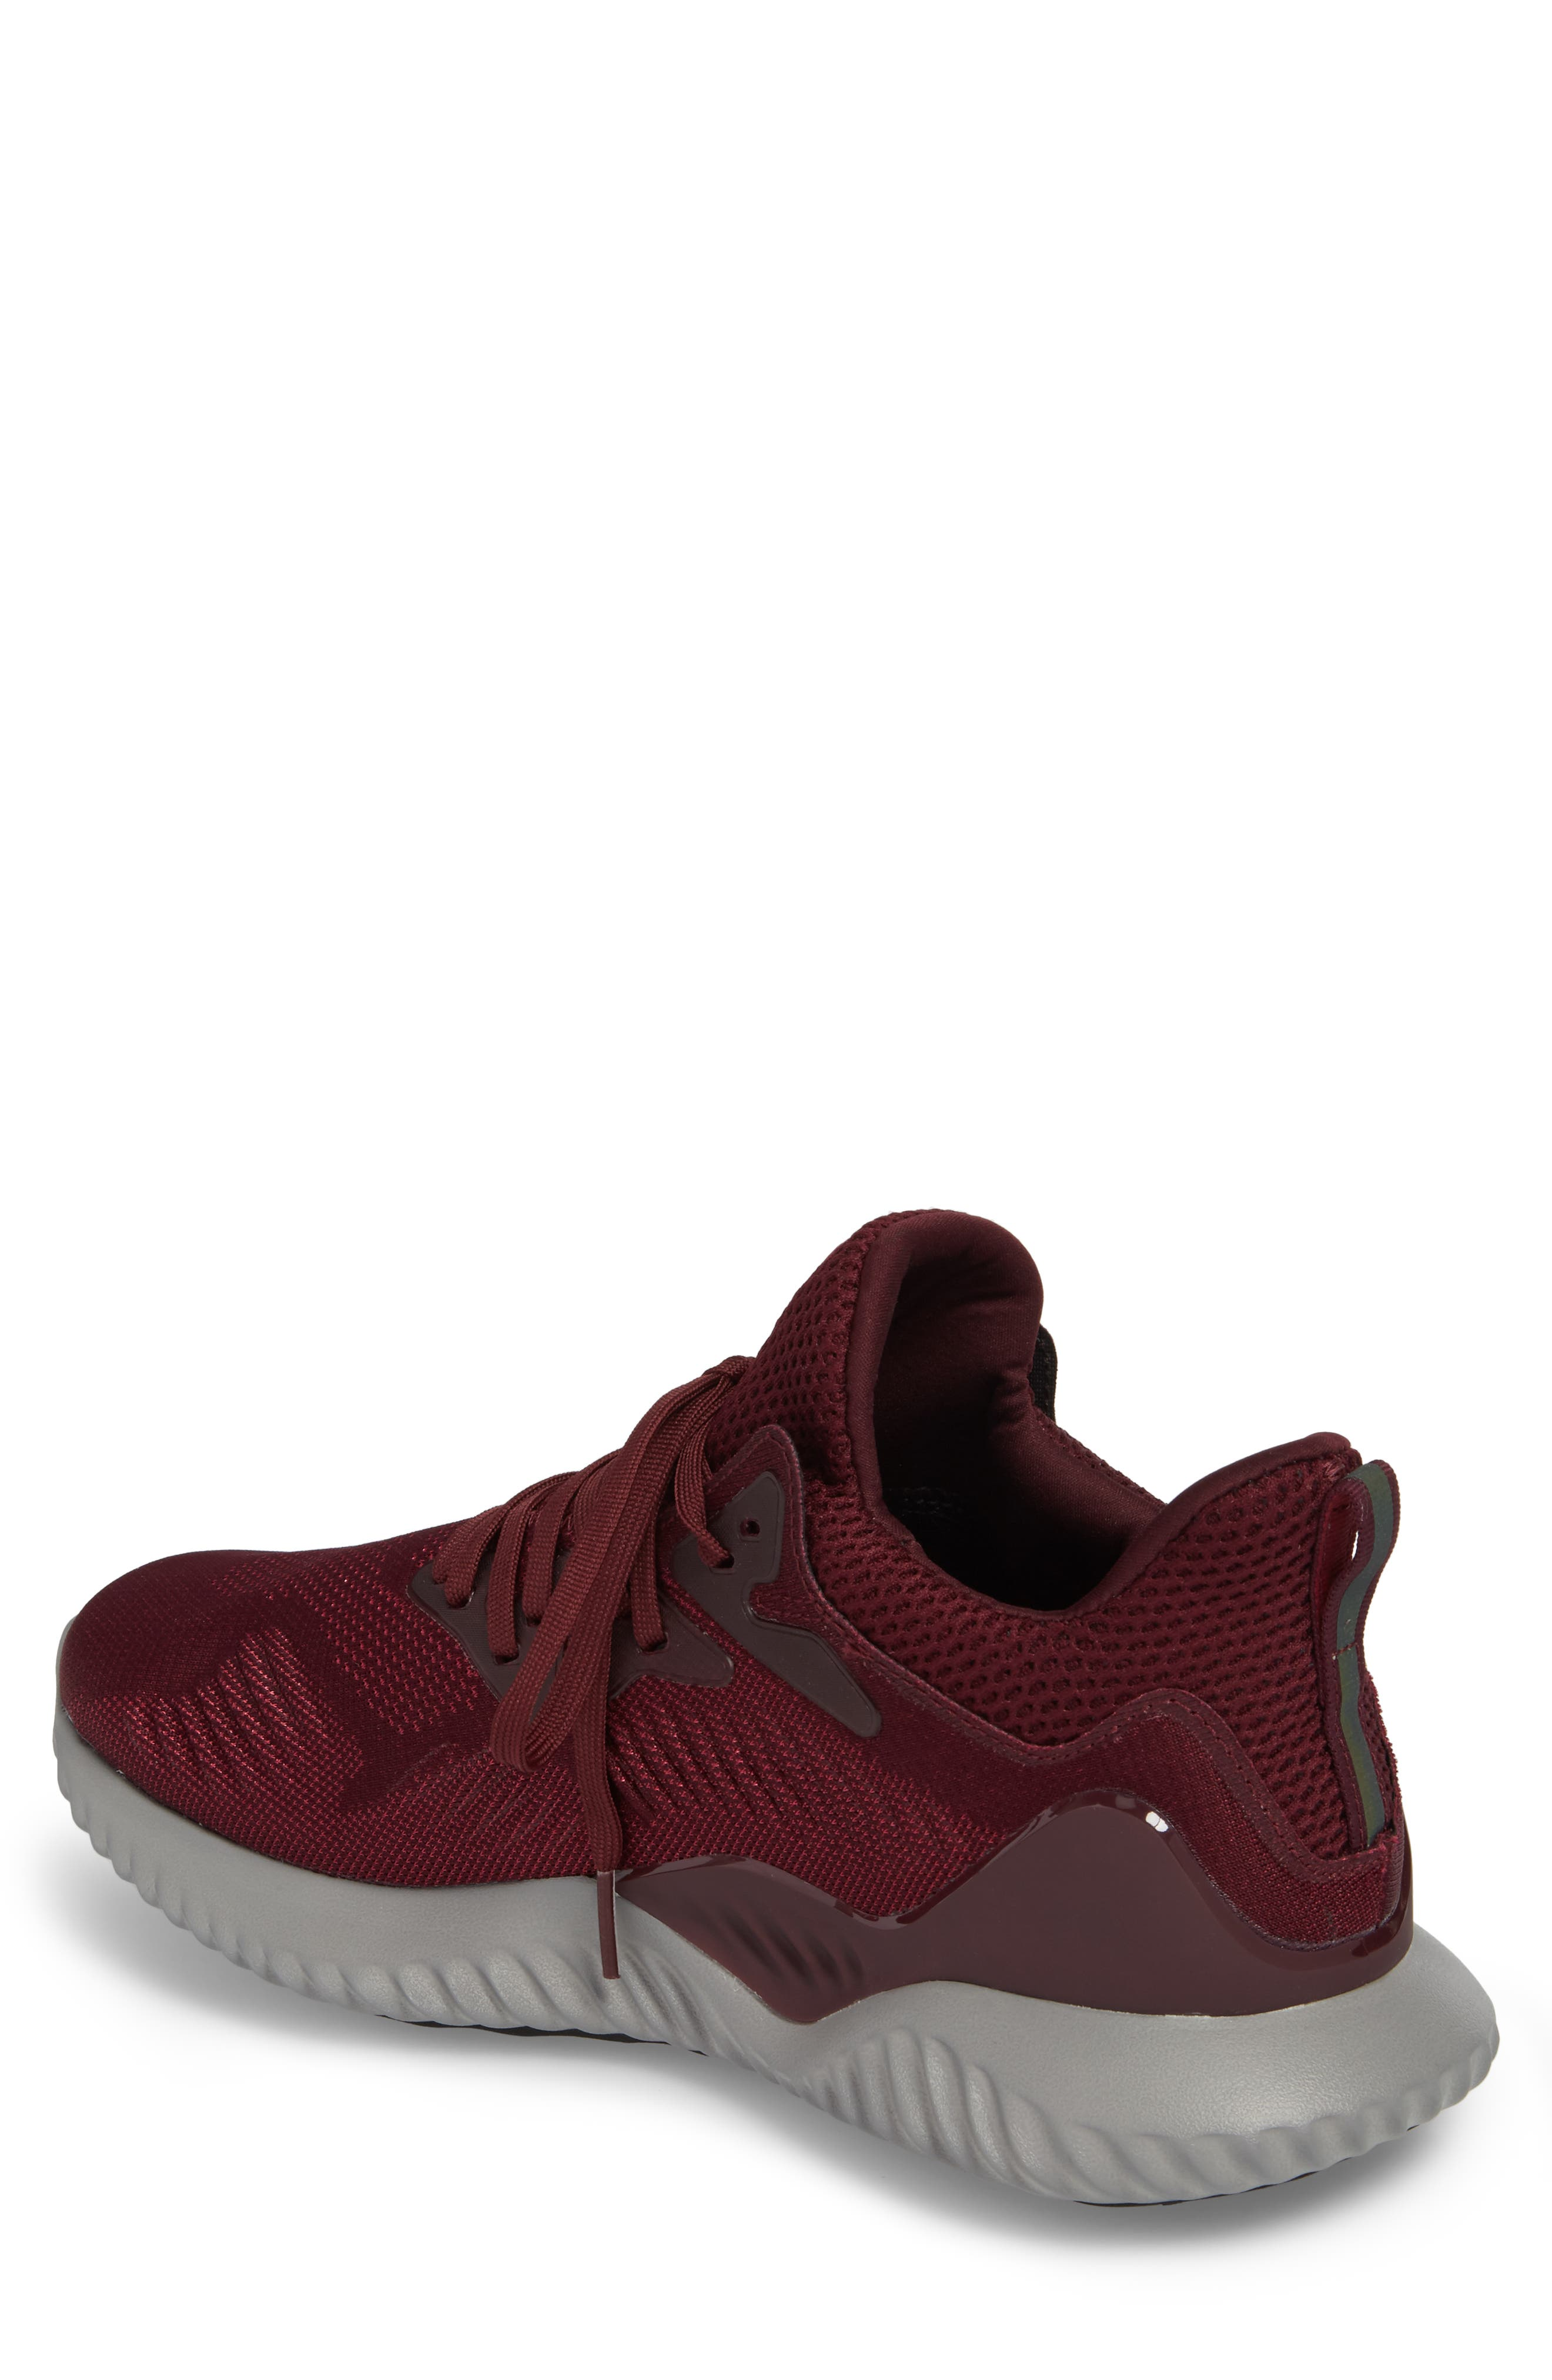 AlphaBounce Beyond Knit Running Shoe,                             Alternate thumbnail 2, color,                             Maroon/ Mystery Ruby